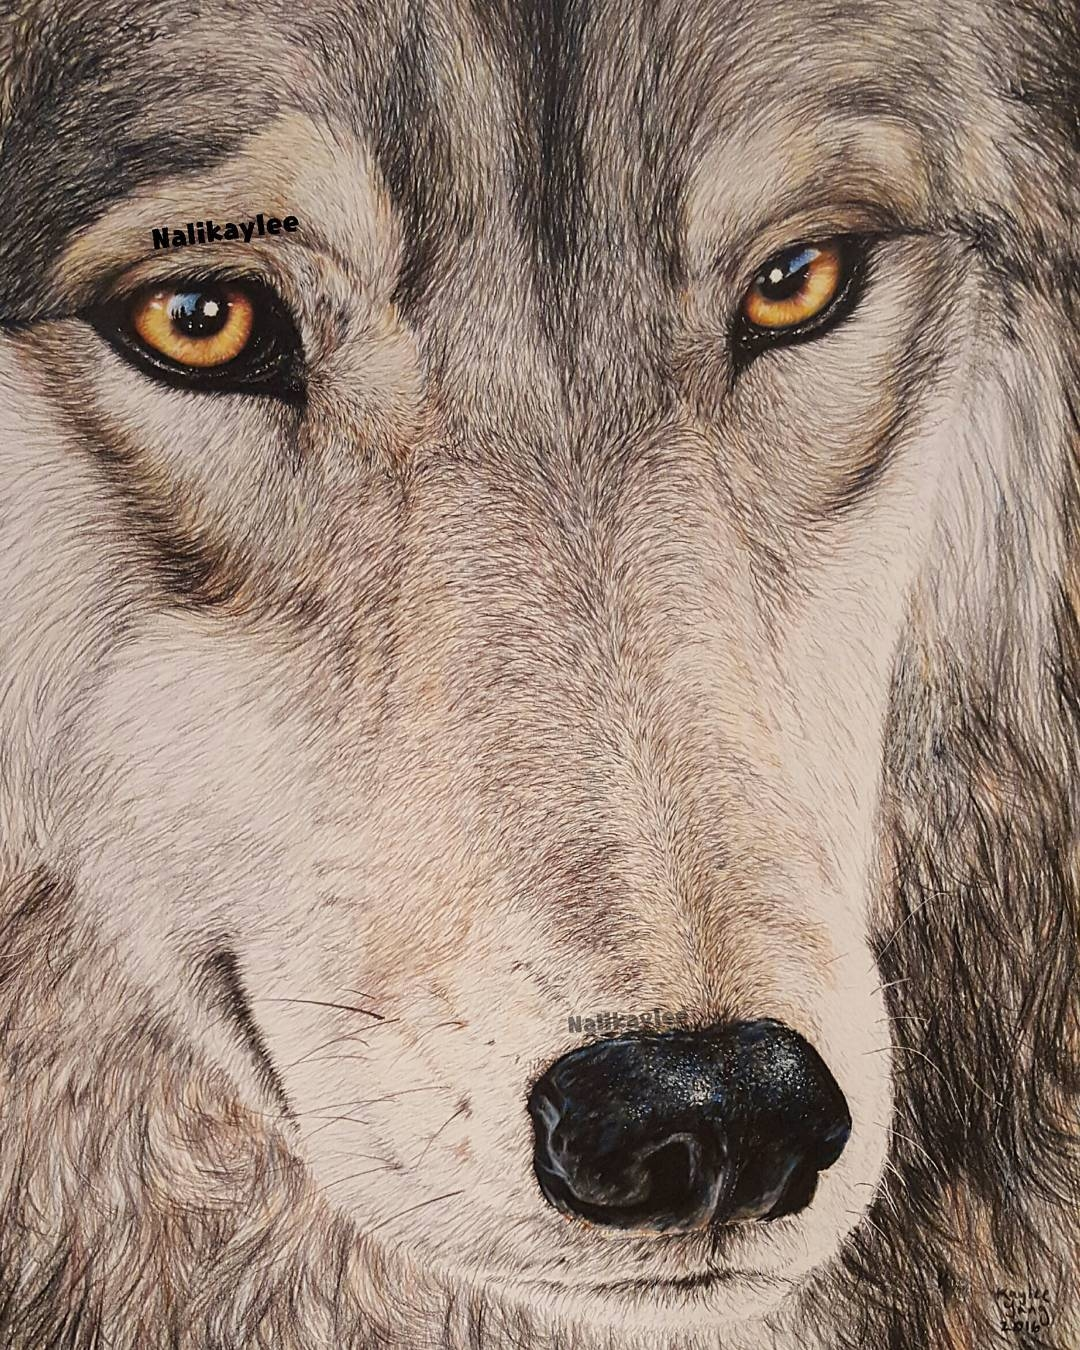 09-Wolf-Kaylee-Yang-nalikaylee-Realistic-Drawings-which-Include-Animals-and-Objects-www-designstack-co